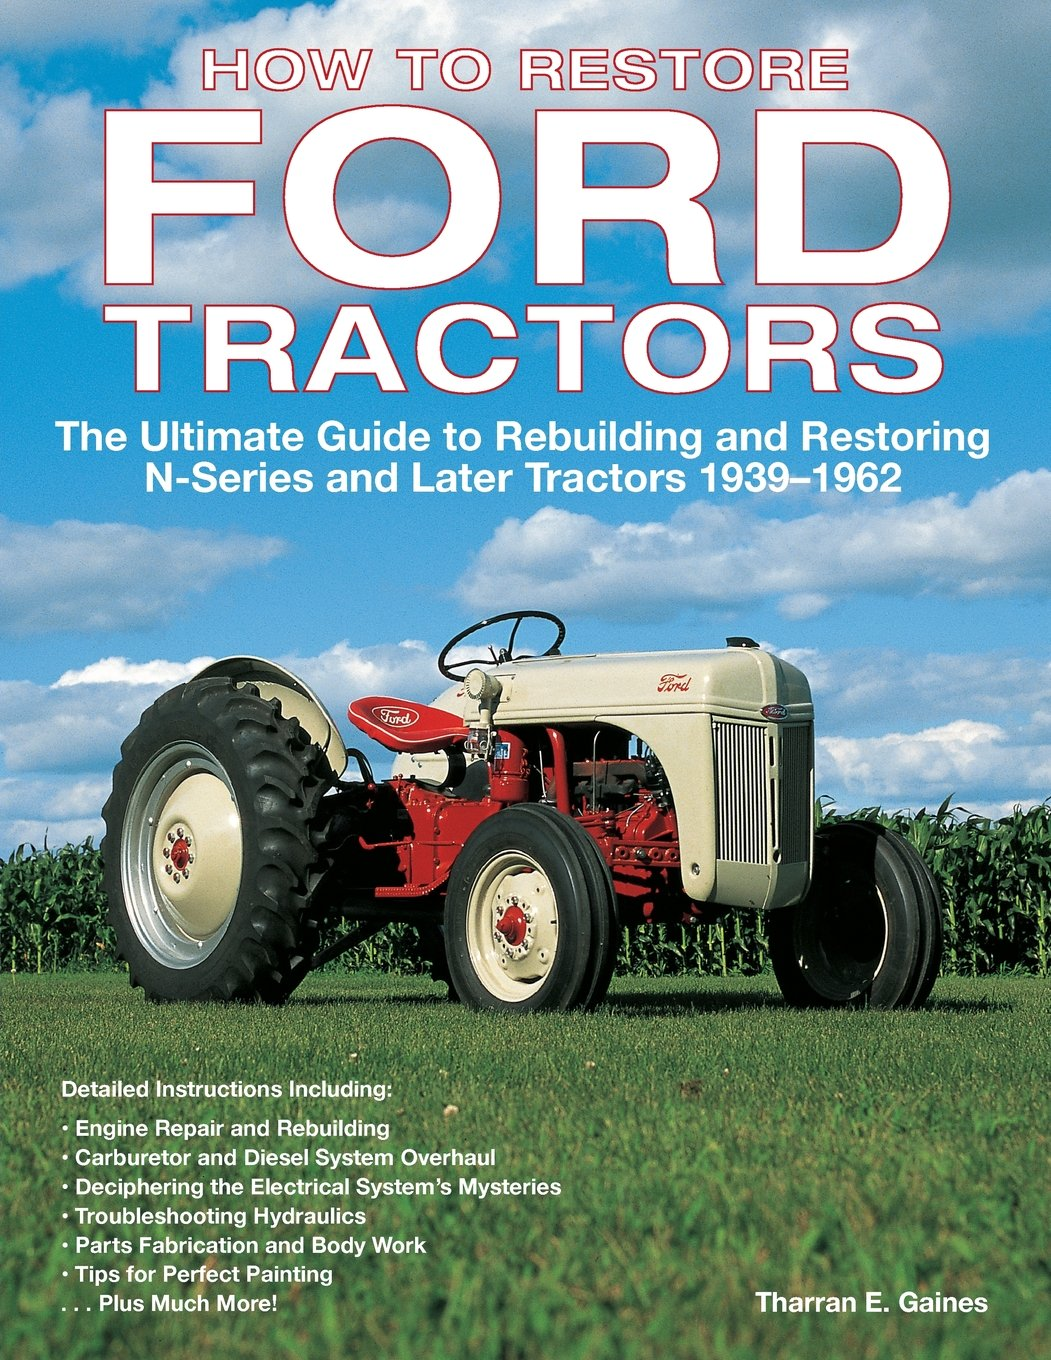 How to Restore Ford Tractors: The Ultimate Guide to Rebuilding and  Restoring N-Series and Later Tractors 1939-1962: Tharran E Gaines:  9780760326206: ...